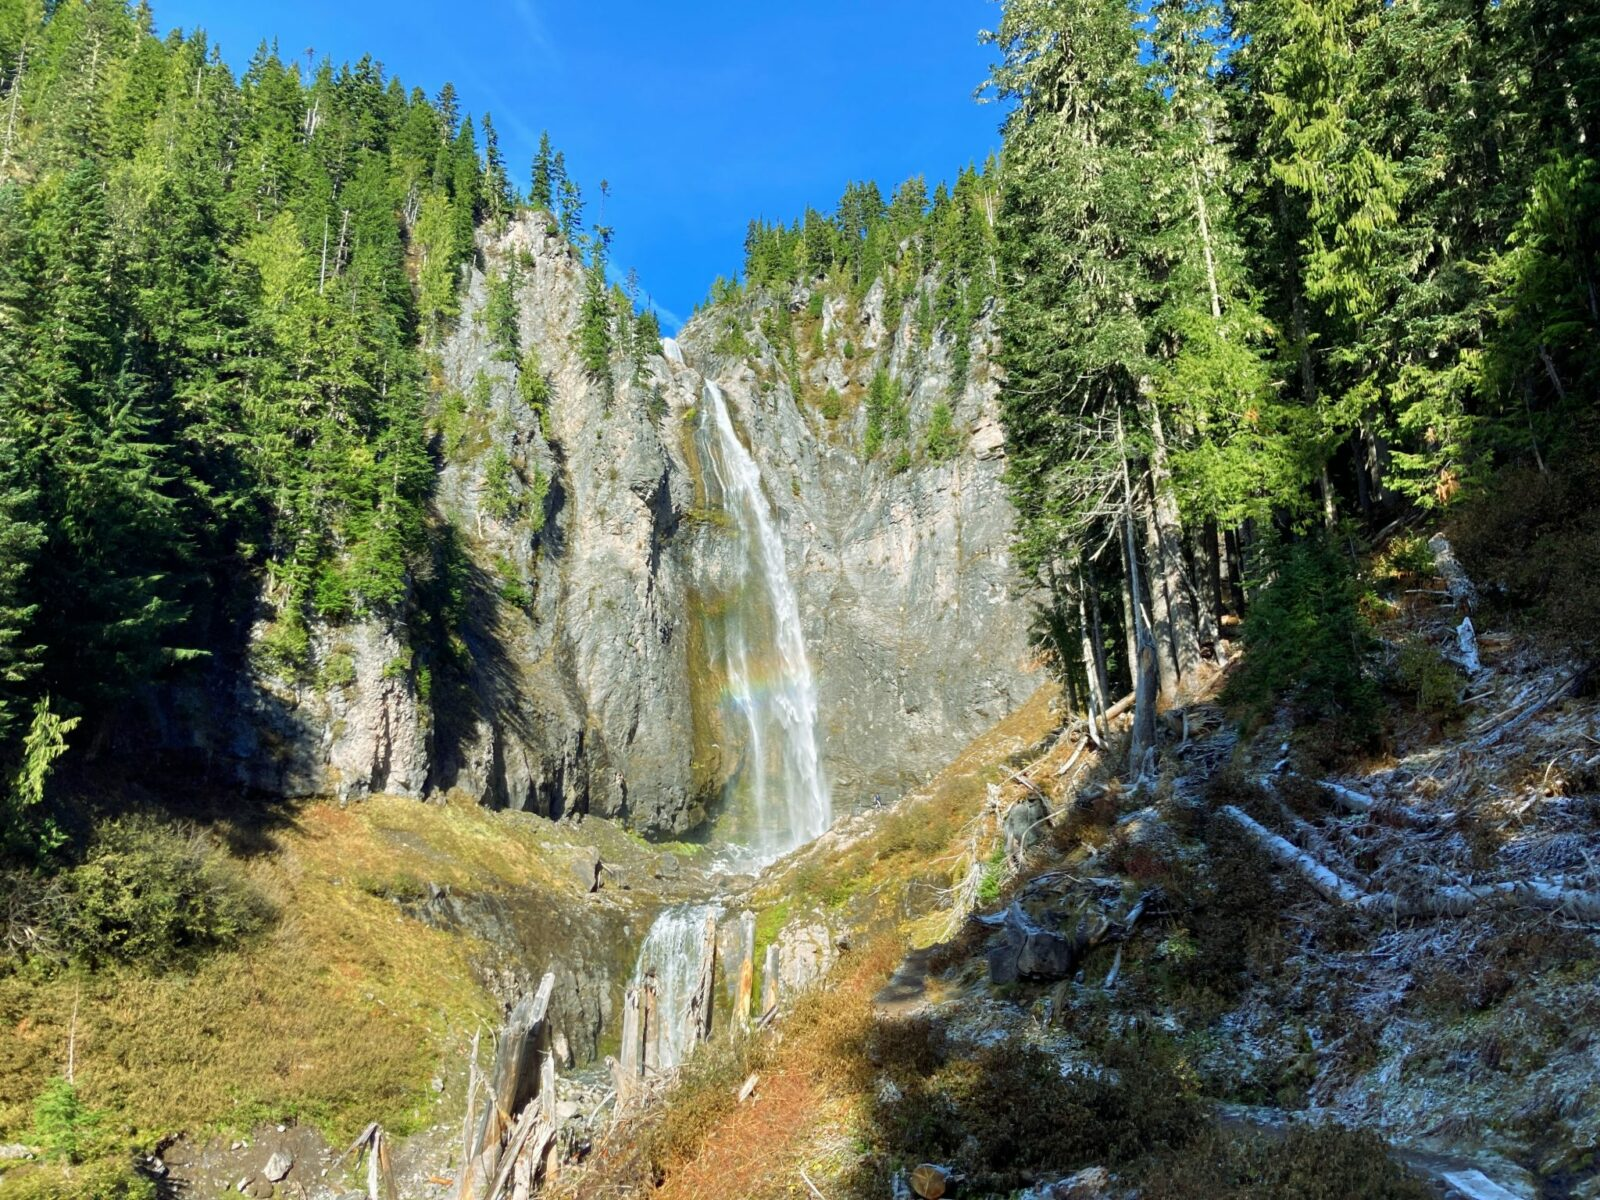 Comet Falls comes straight down a cliff face with forests around the cliff on a sunny day